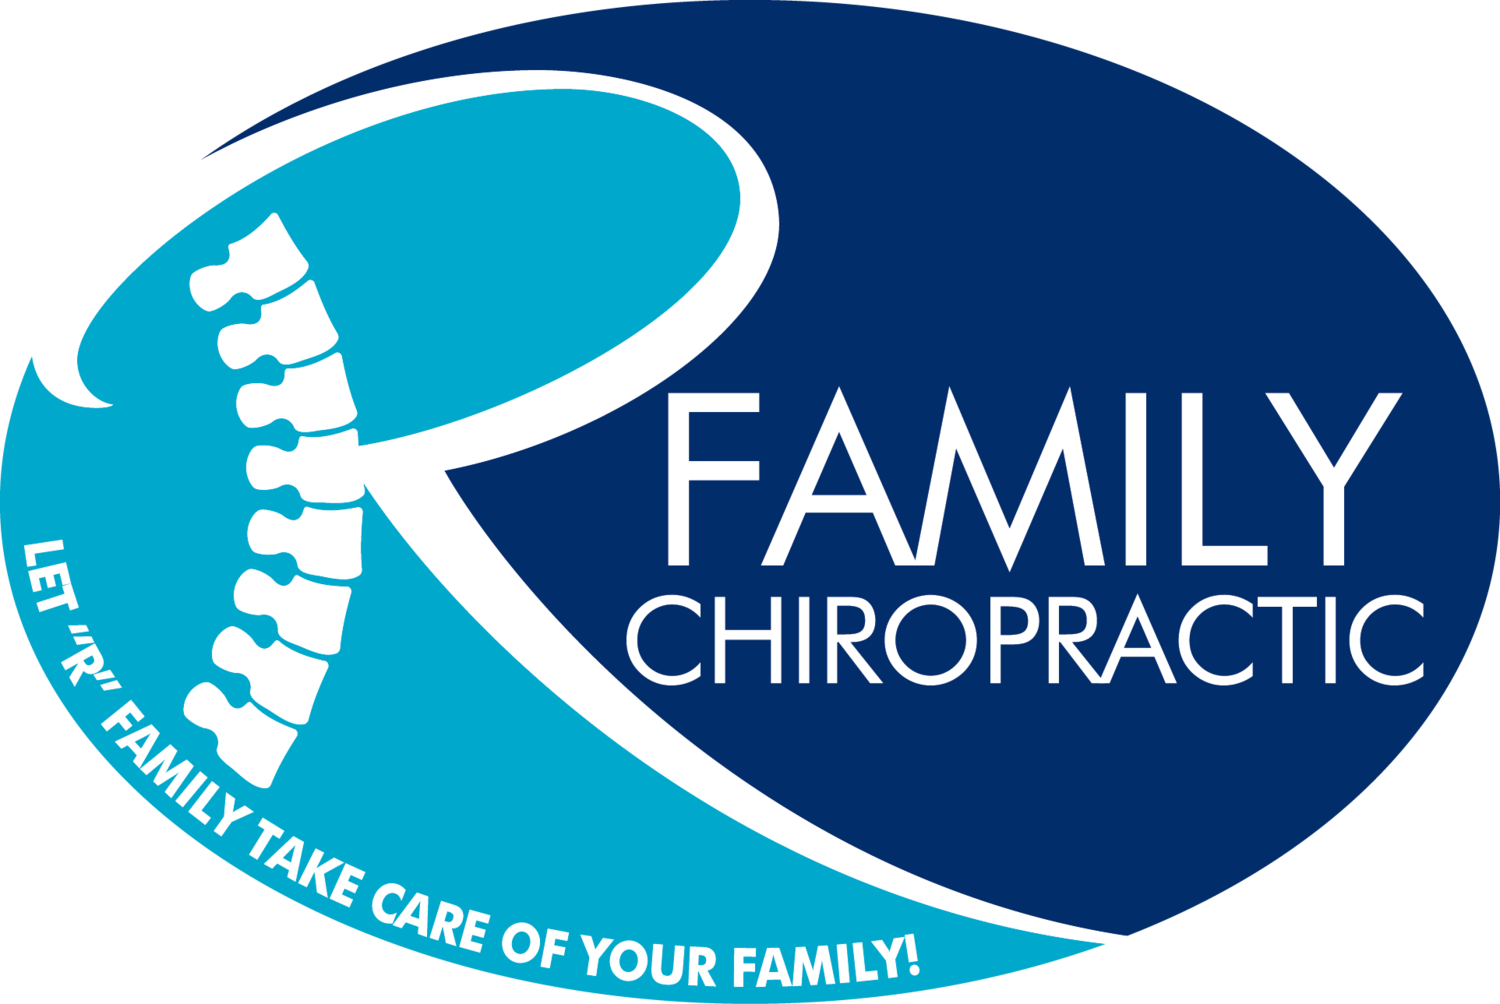 R Family Chiropractic | Fort Worth | Chiropractor | Back Pain | Neck Pain | Leg Pain | Migraines | Wellness | Health